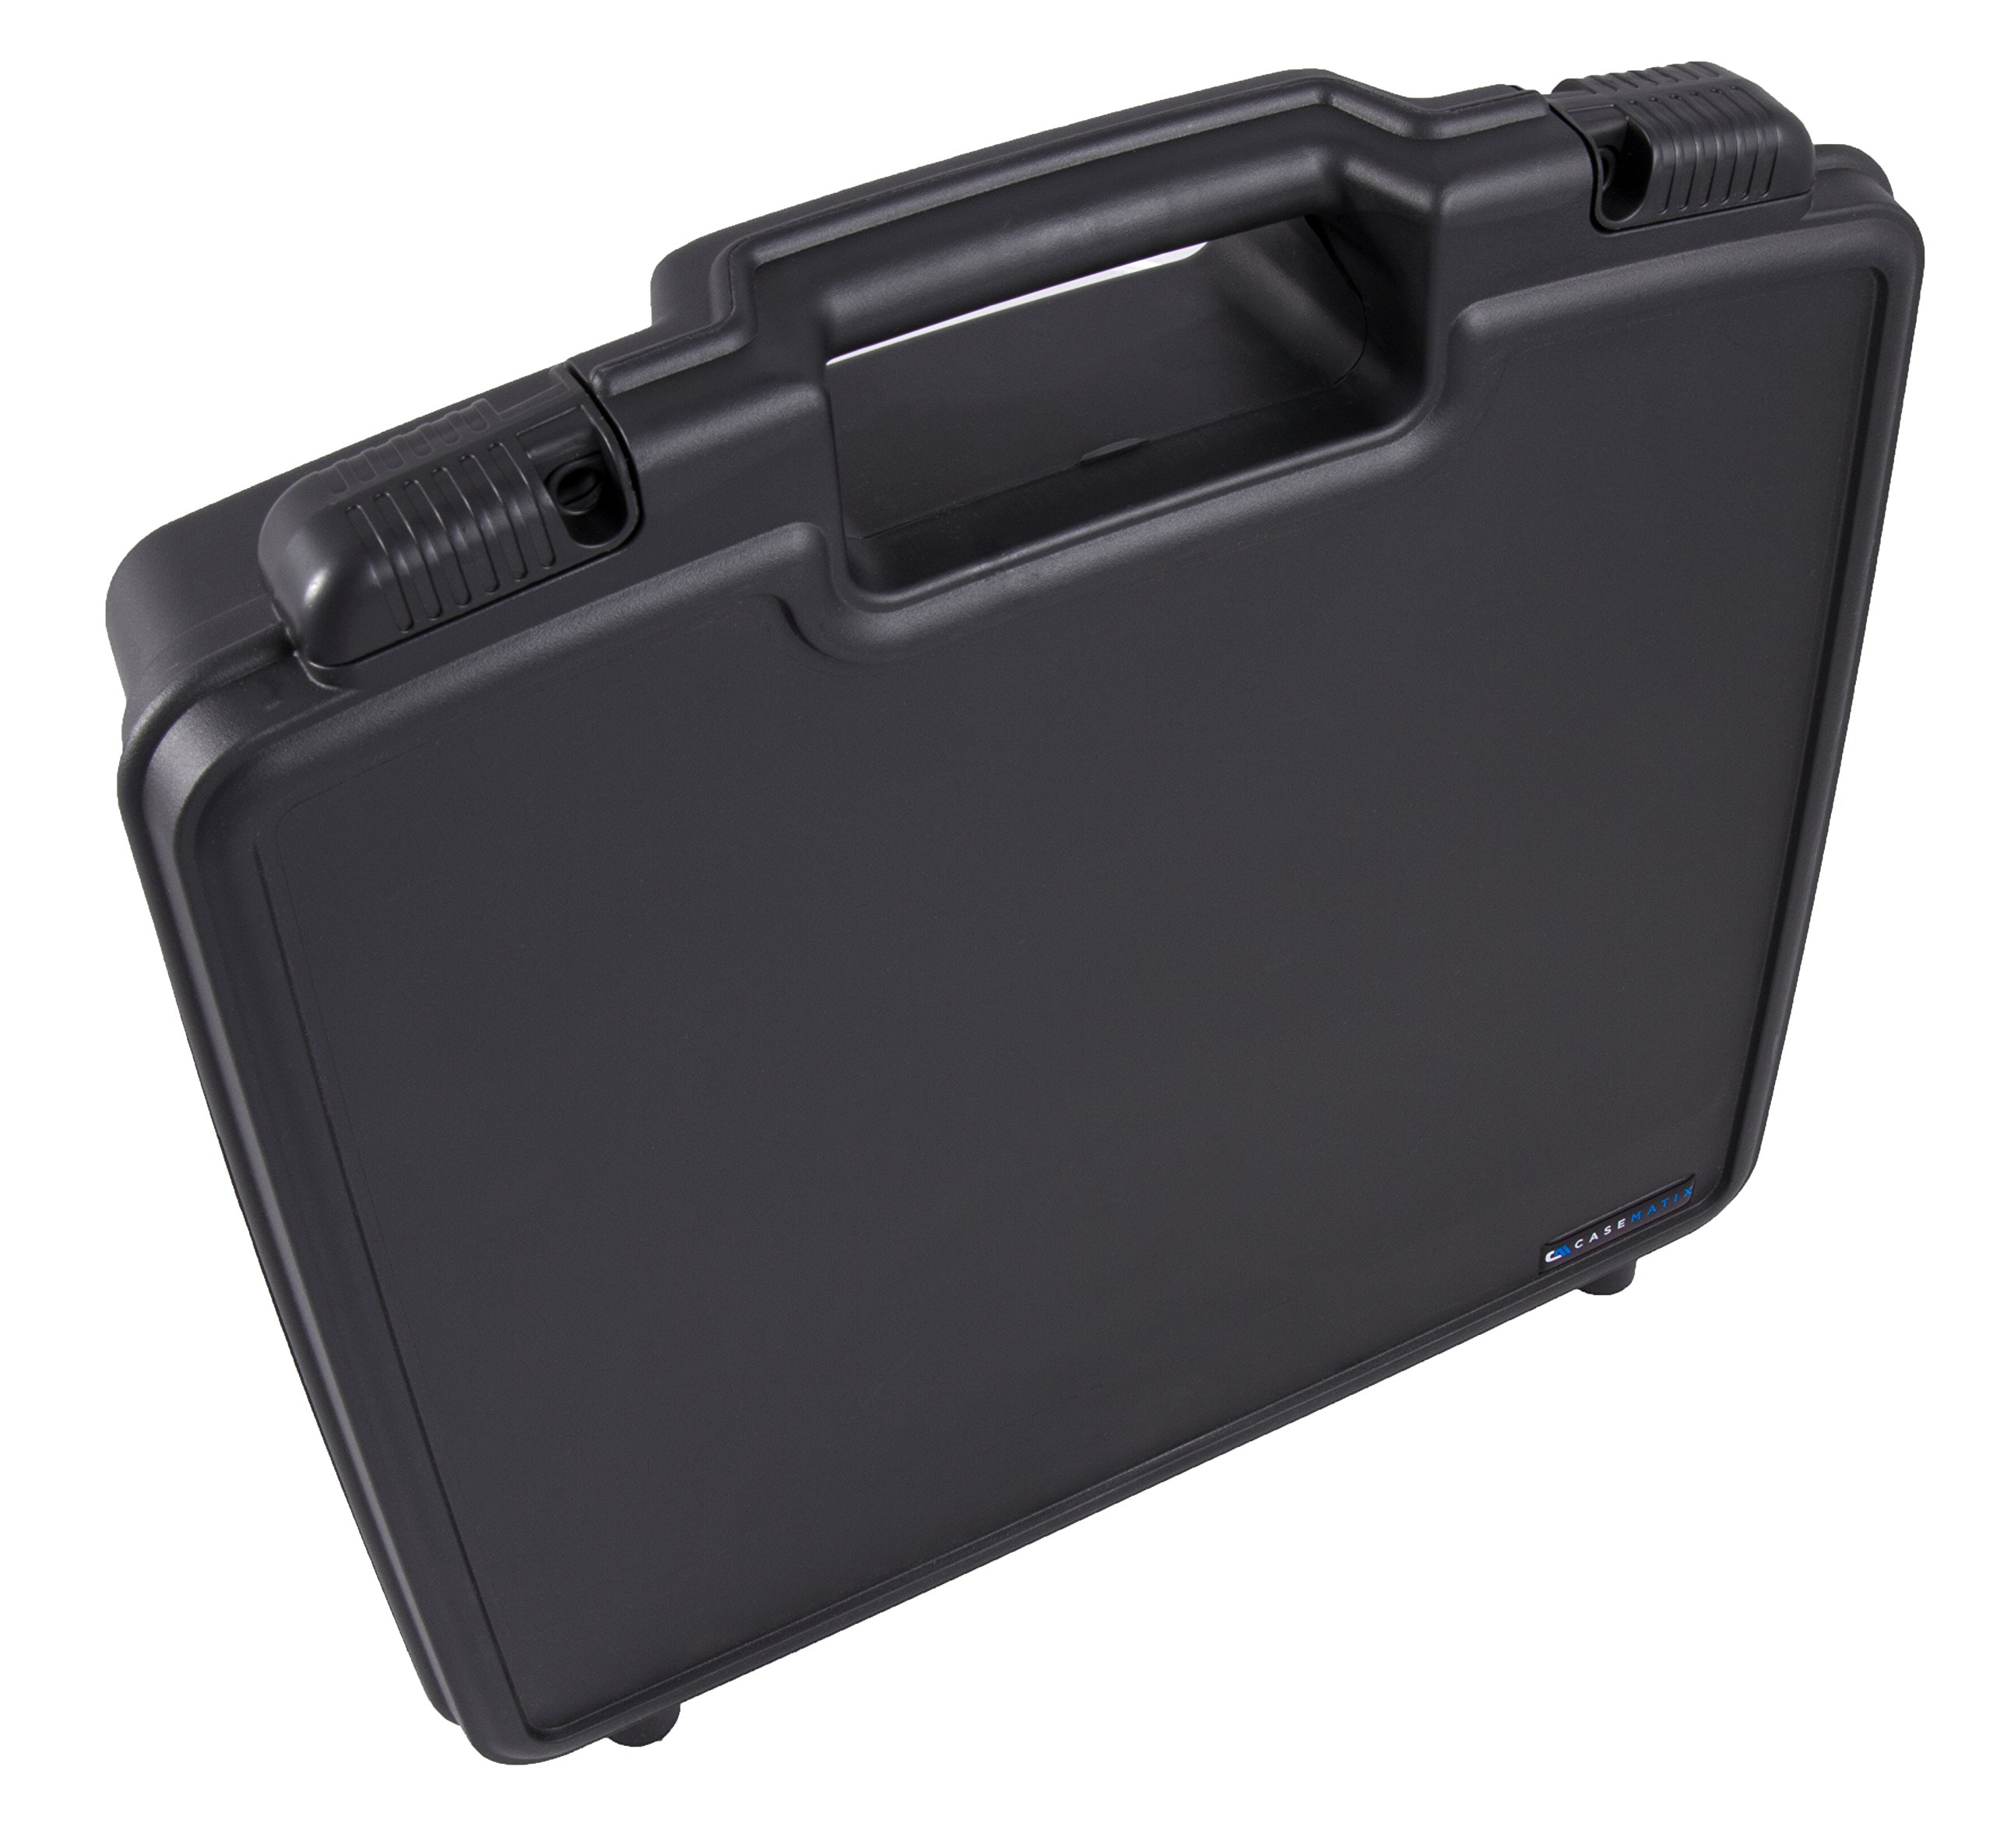 CASEMATIX Controller Case Fits Akai Professional Fire FL Studio With Plug-And-Play USB - INCLUDES PROTECTIVE CARRY CASE ONLY by CASEMATIX (Image #5)